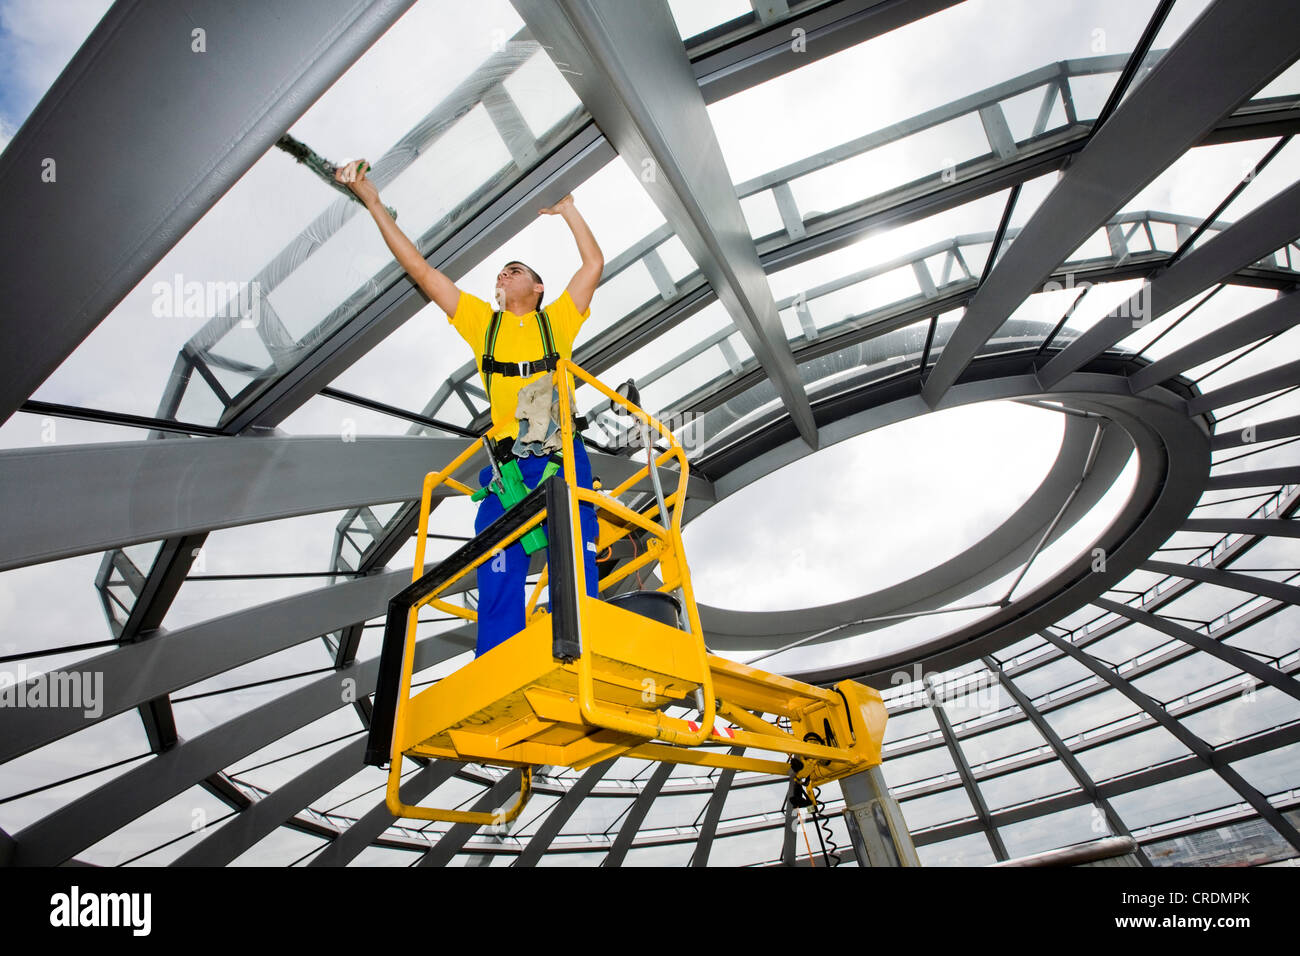 Window cleaner cleaning the dome of the Reichstag Building, Deutscher Bundestag, German parliament, Berlin, Germany, - Stock Image